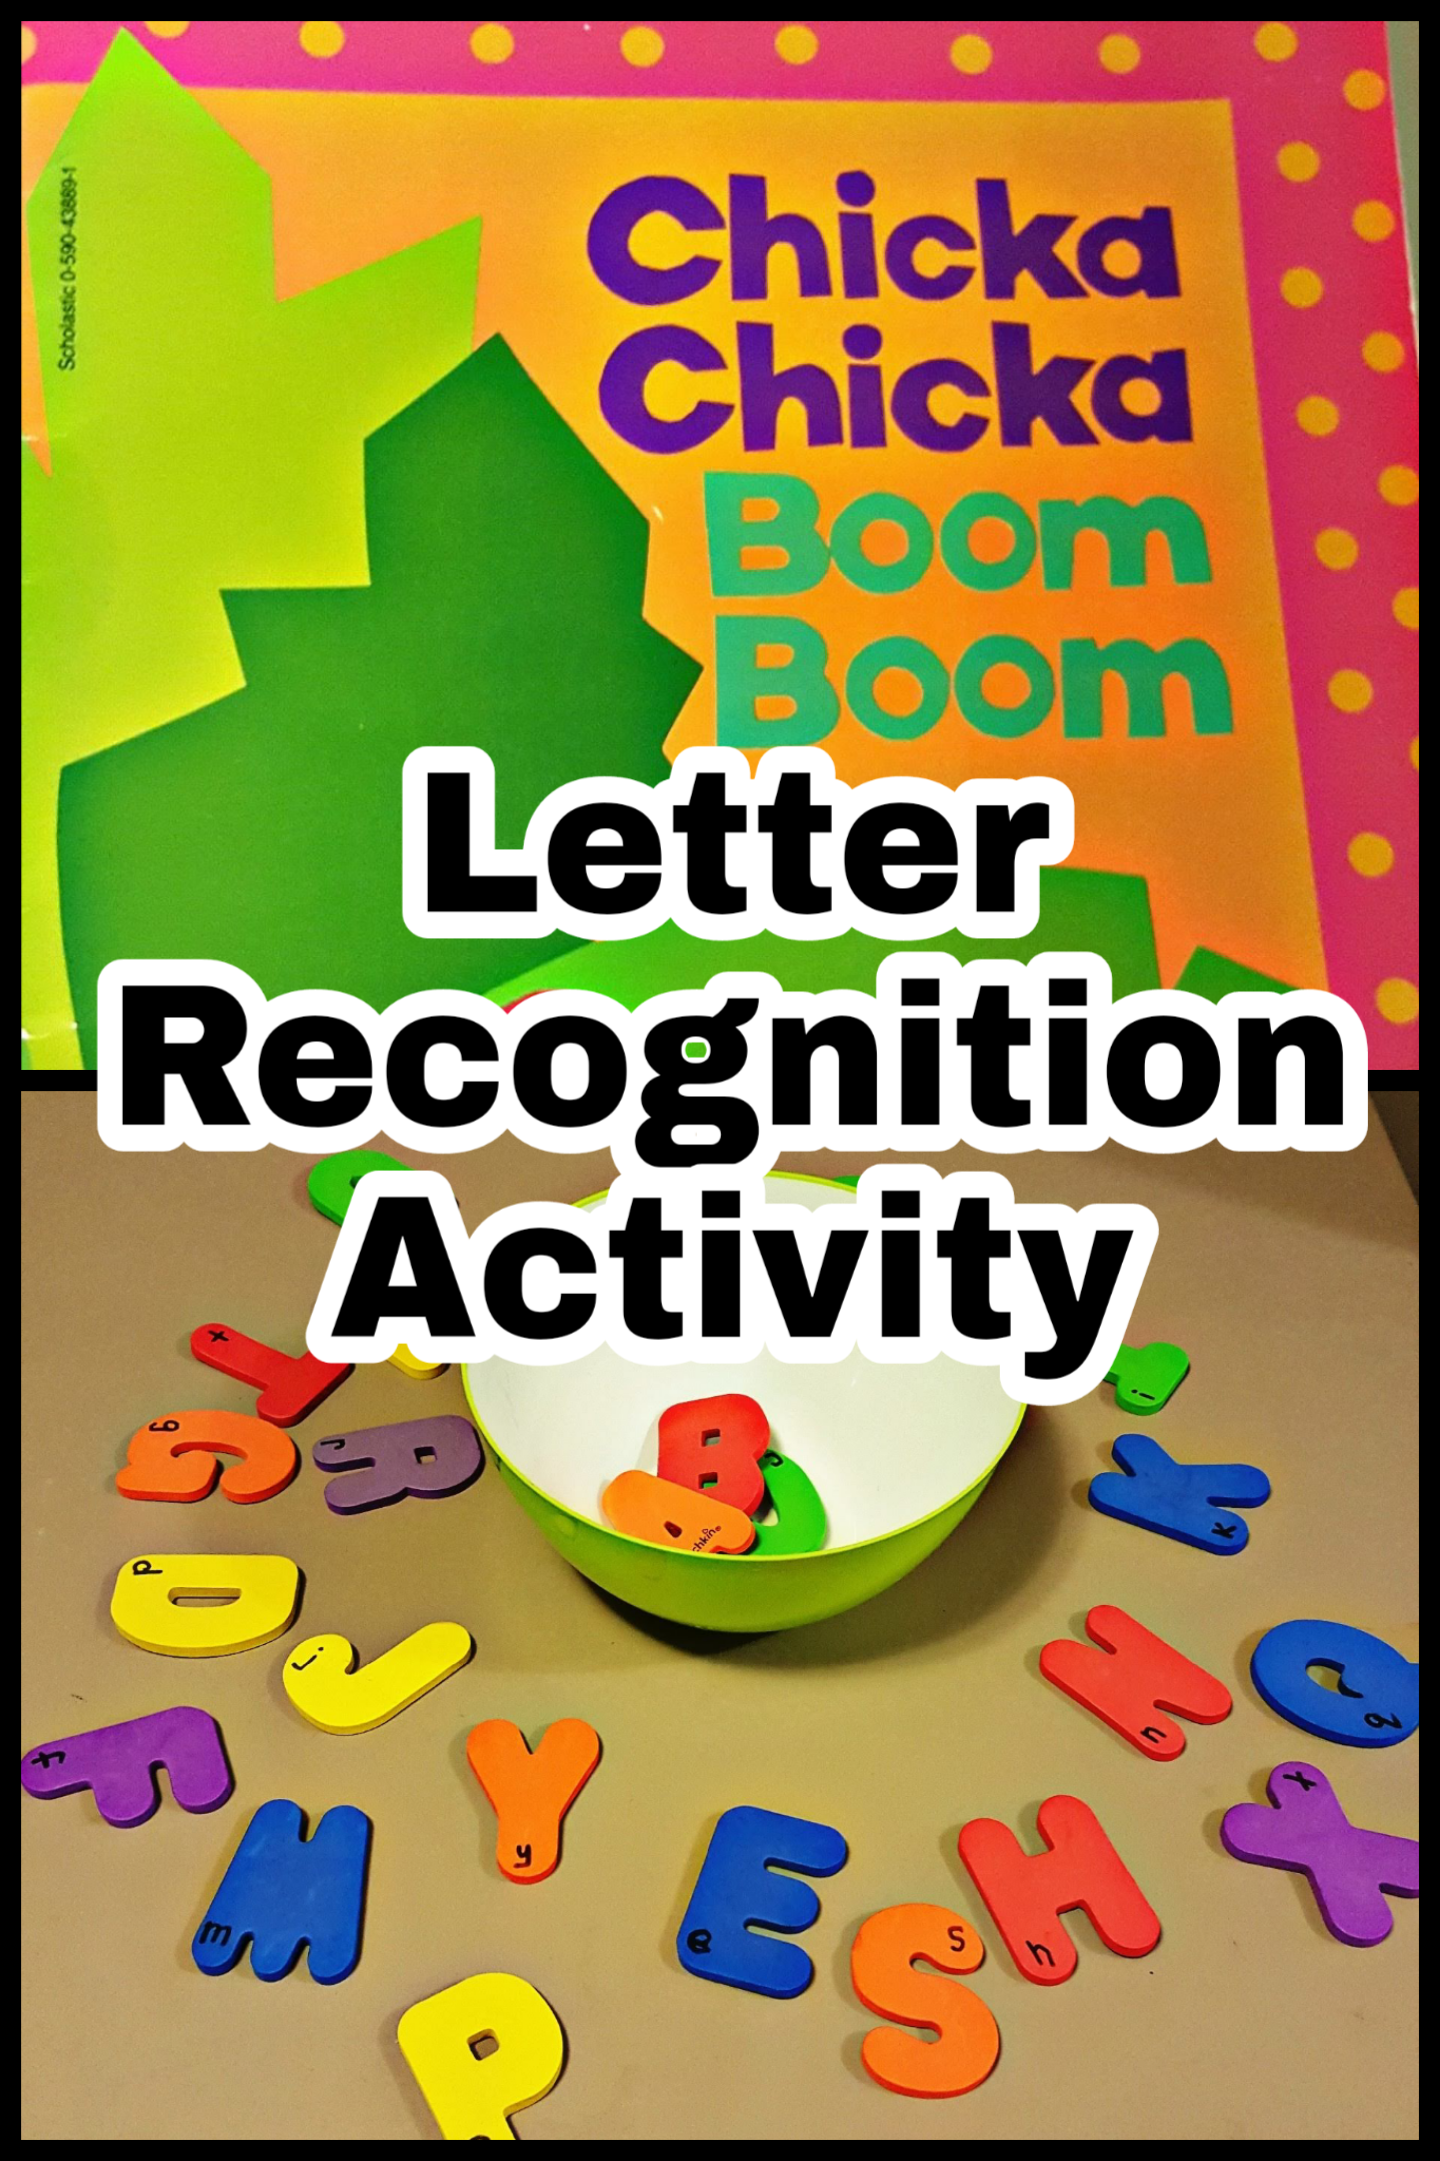 A Simple Activity To Accompany The Popular Book Chicka